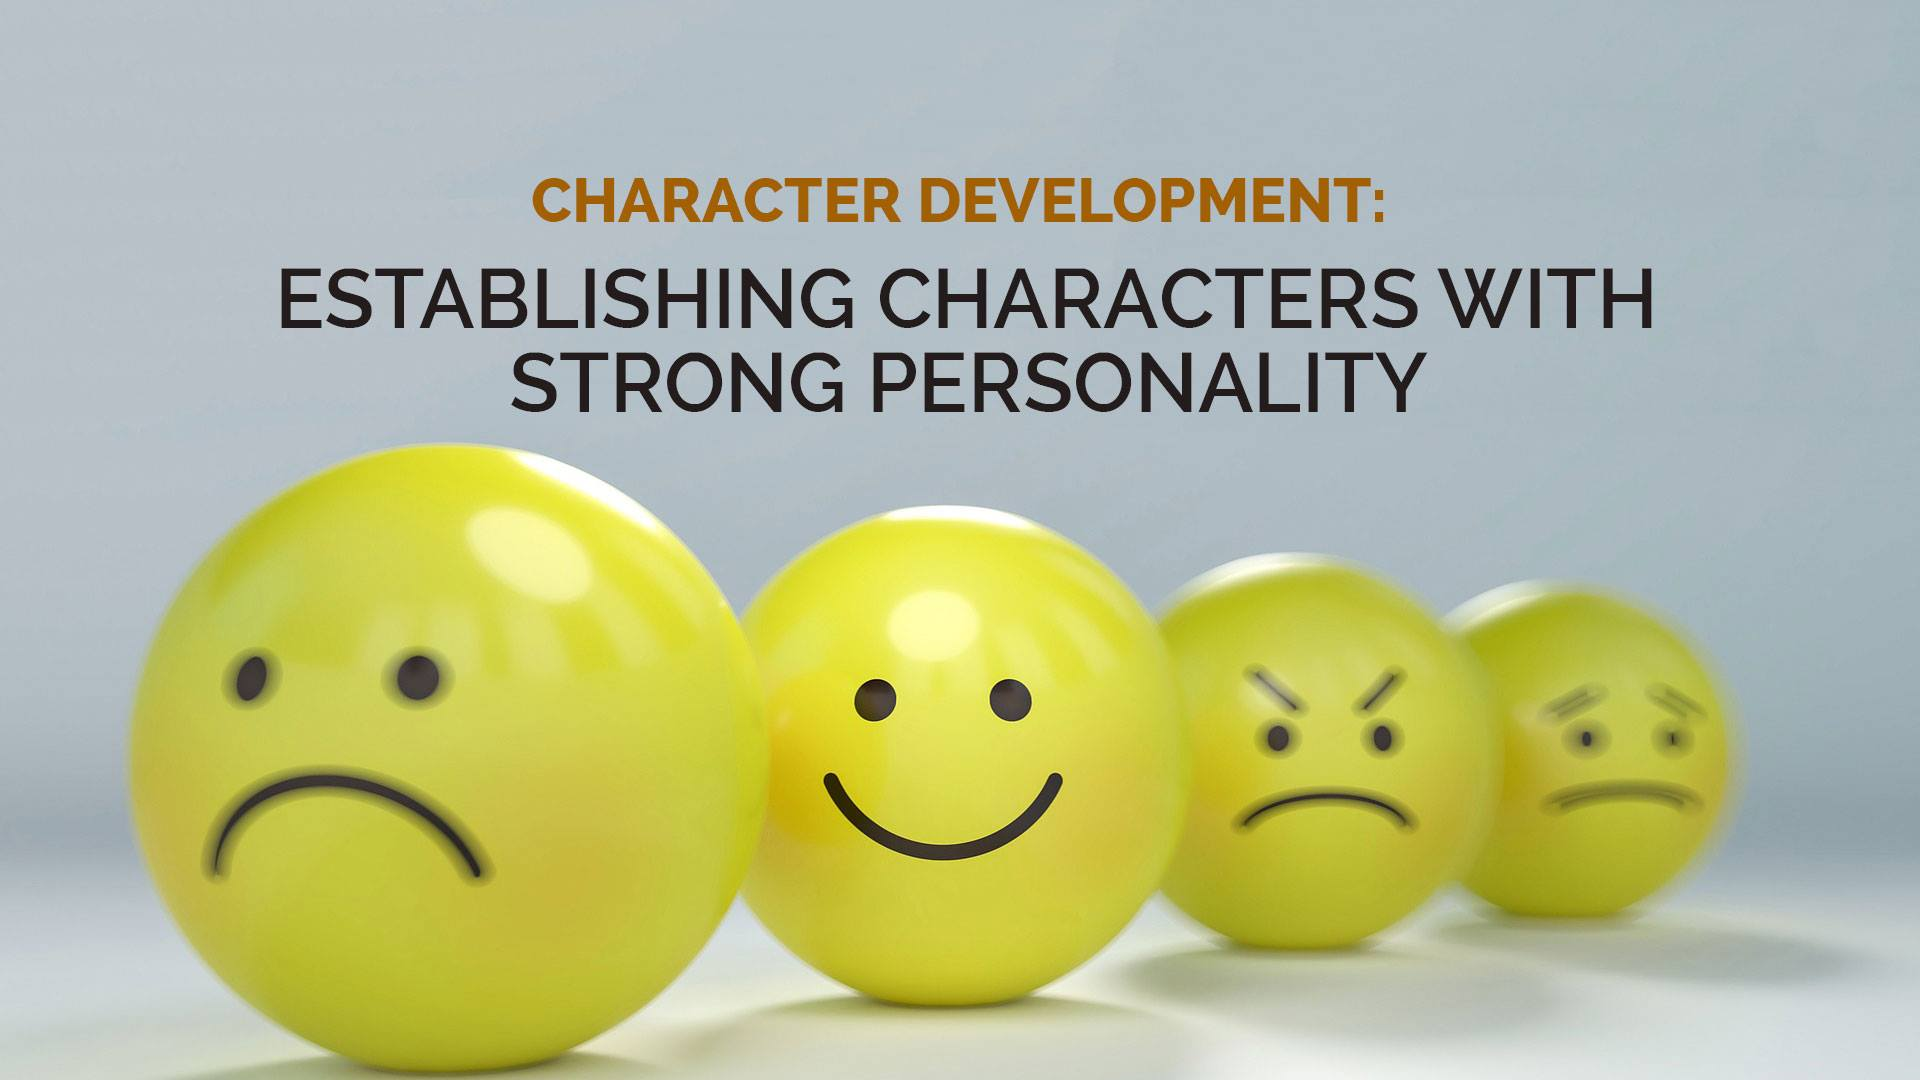 Character Development: Establishing Characters With Strong Personality